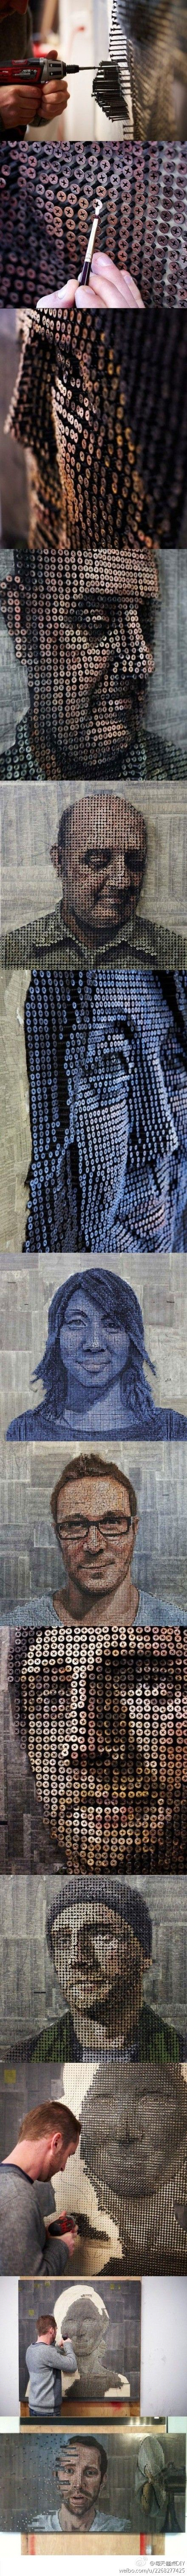 Amazing Art Portrait